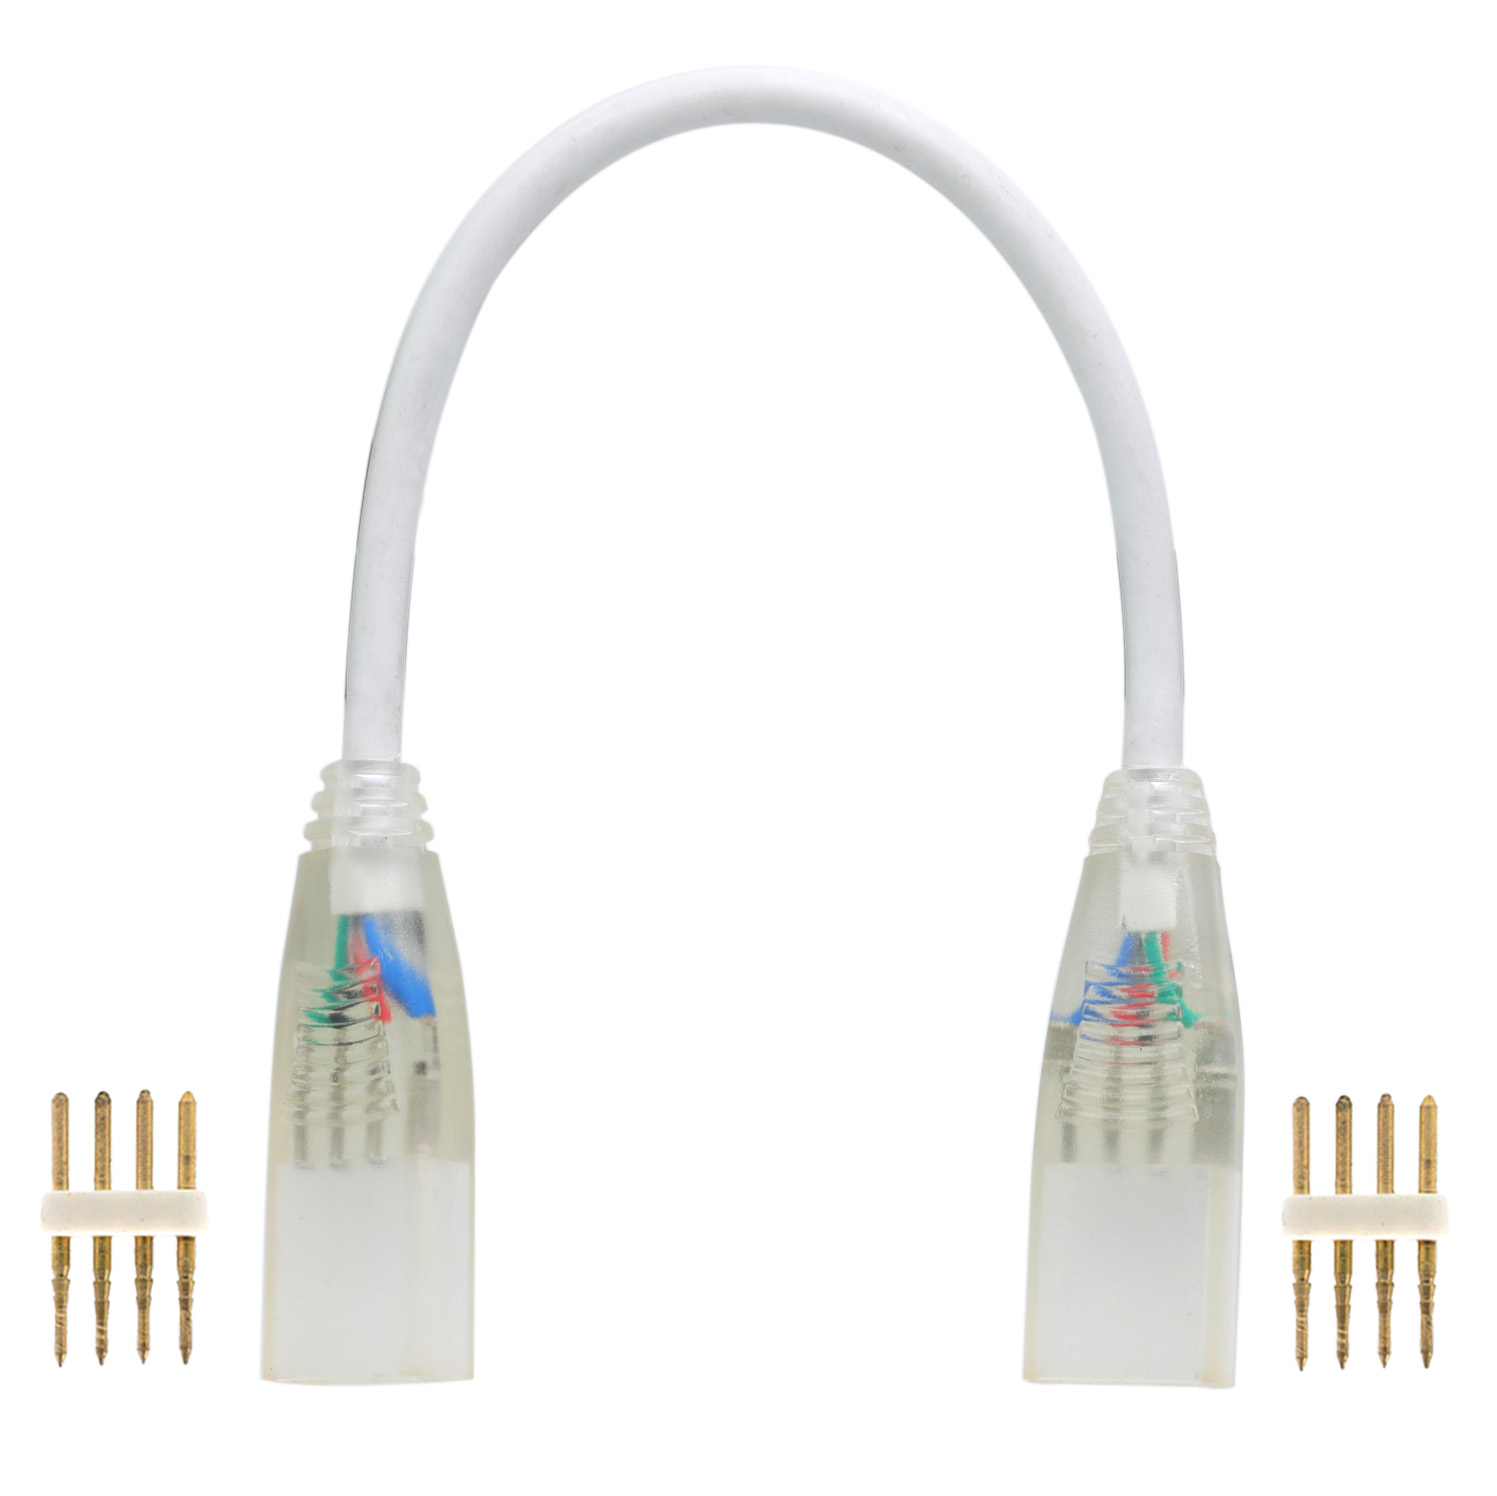 High voltage RGB color changing 4pin double fast connector for 5050 RGB high voltage led strip ligths